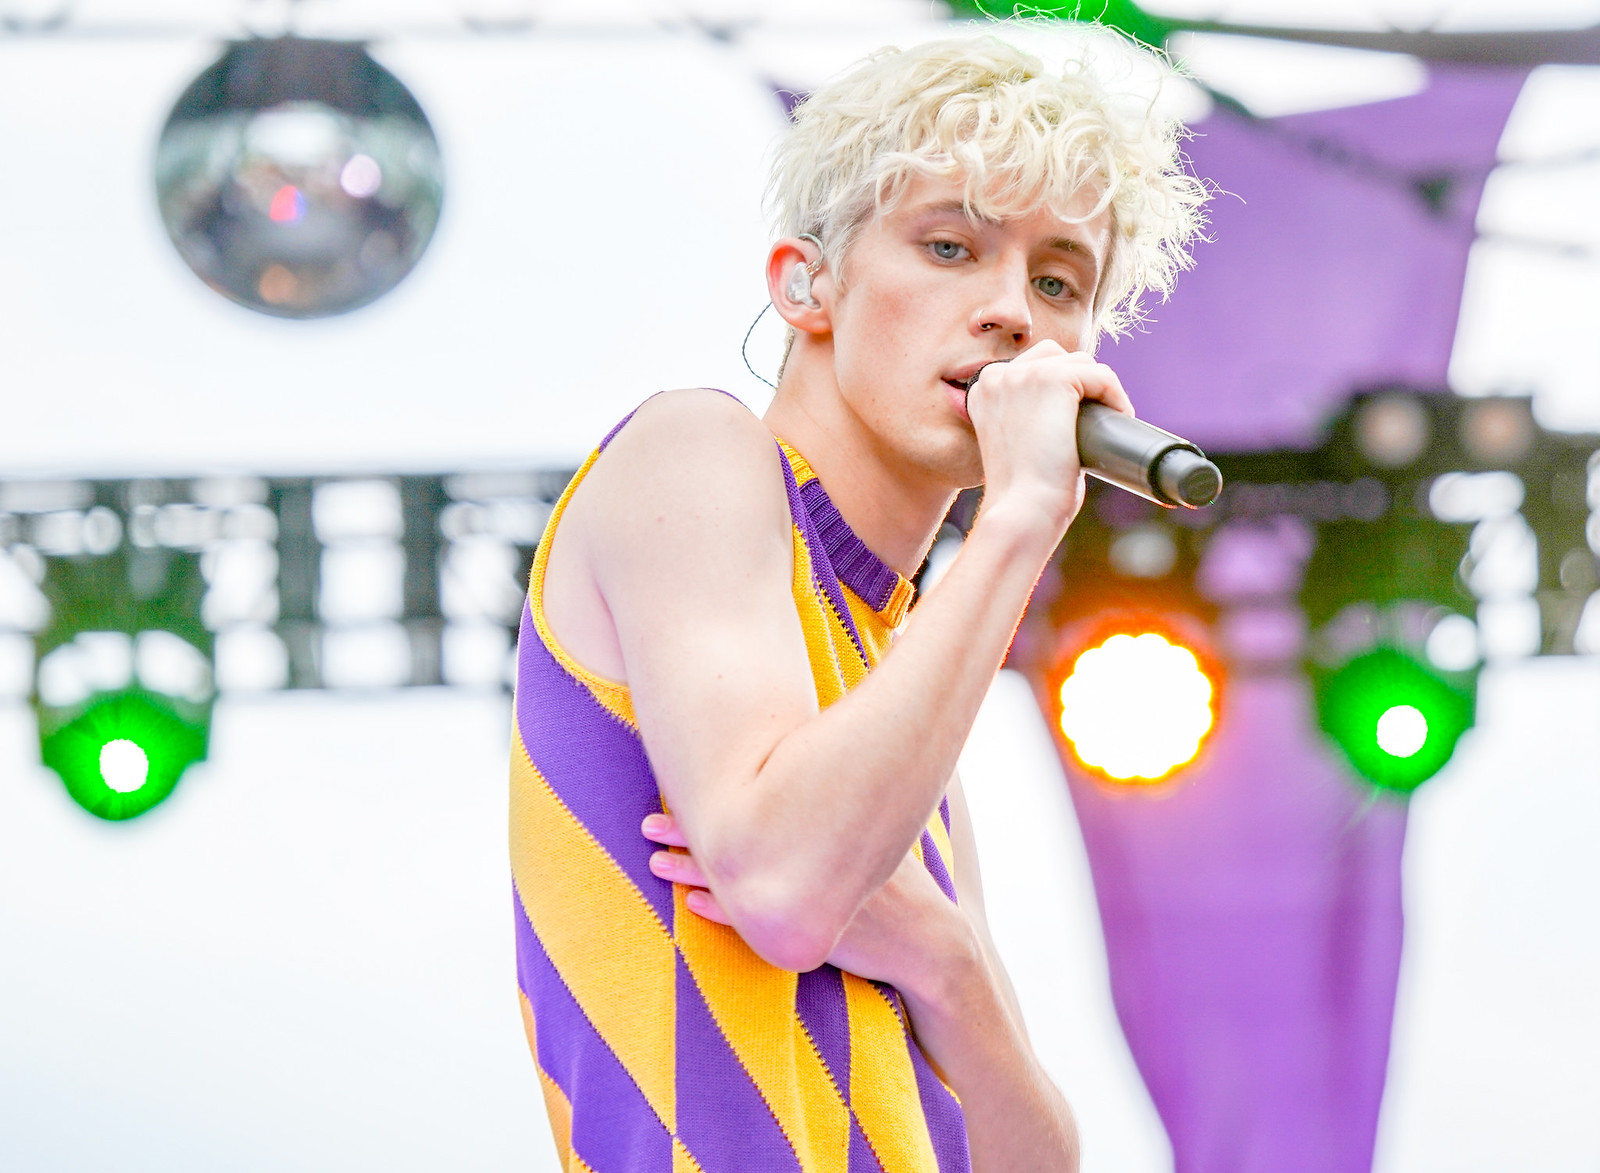 2018.06.10 Troye Sivan at Capital Pride w Sony A7III, Washington, DC USA 03478